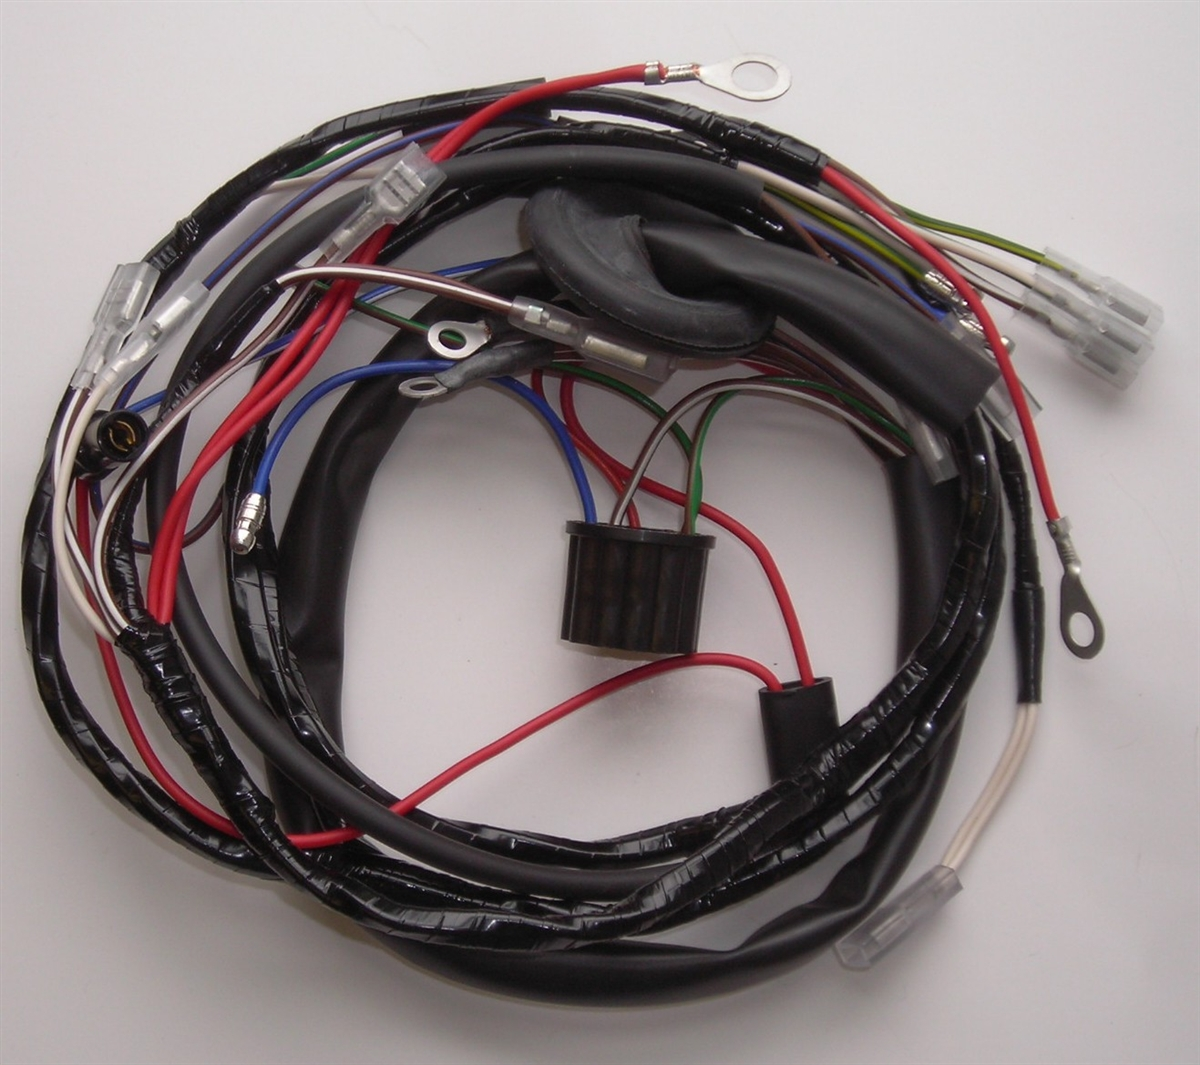 BSA A50 & A65 Motorcycle Wiring Harness  British Wiring